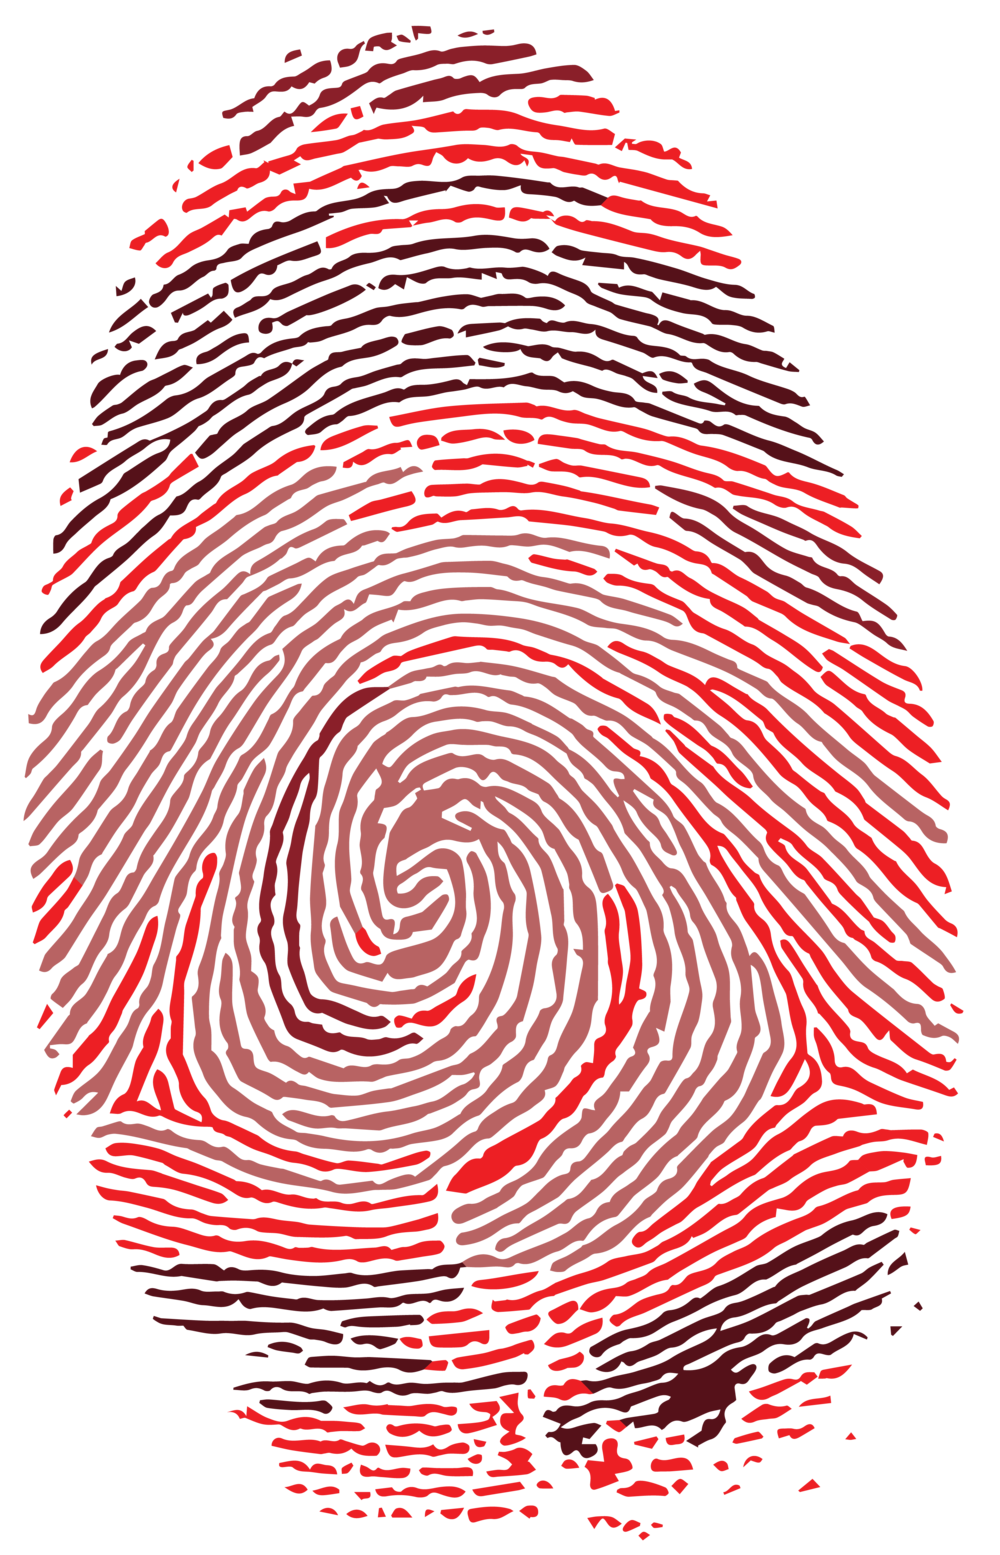 fingerprint-01.png